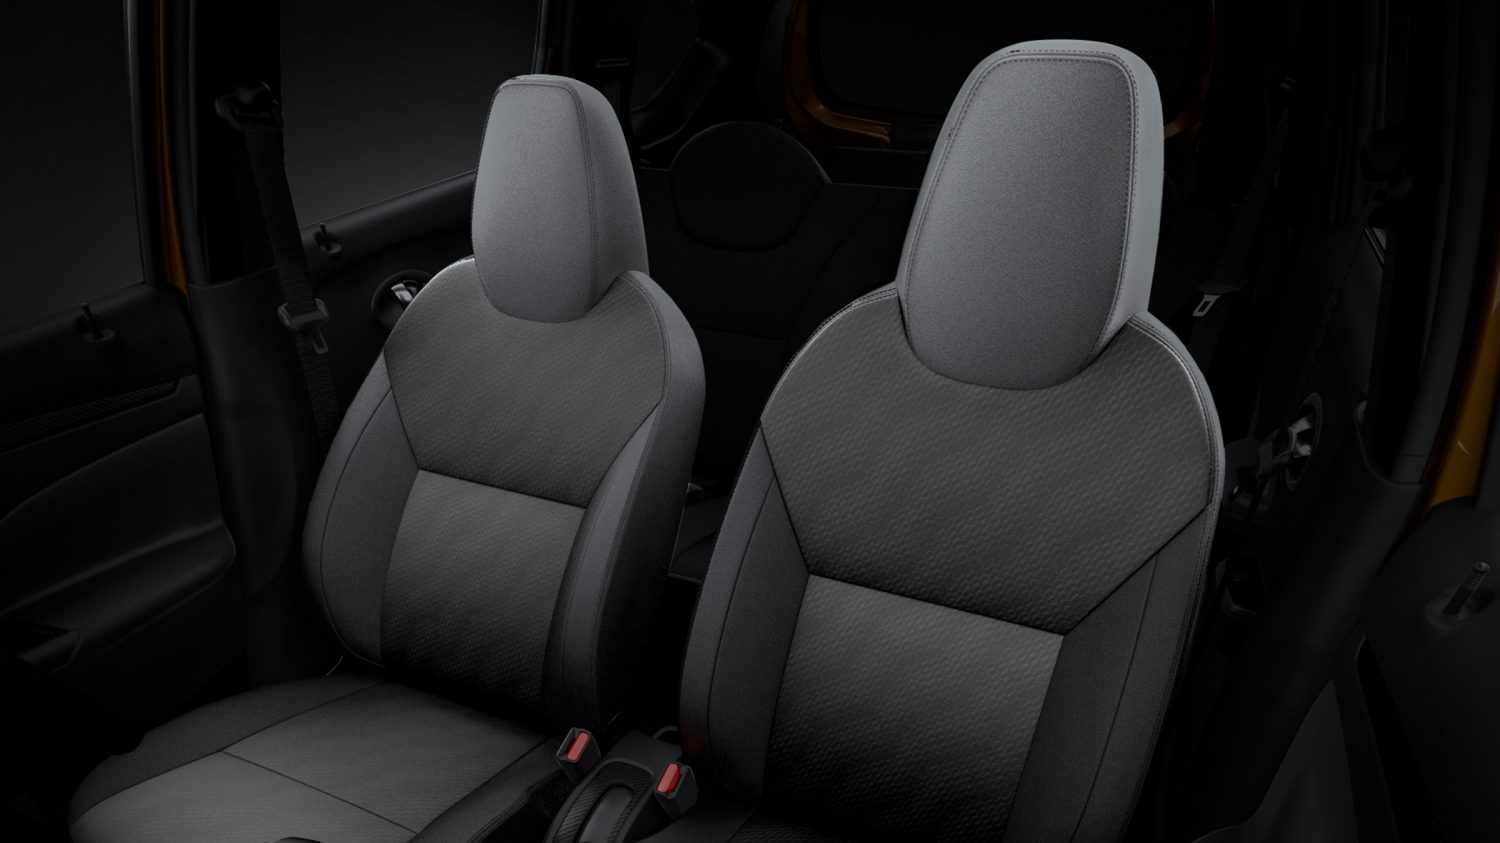 Datsun Cross interior front seat design